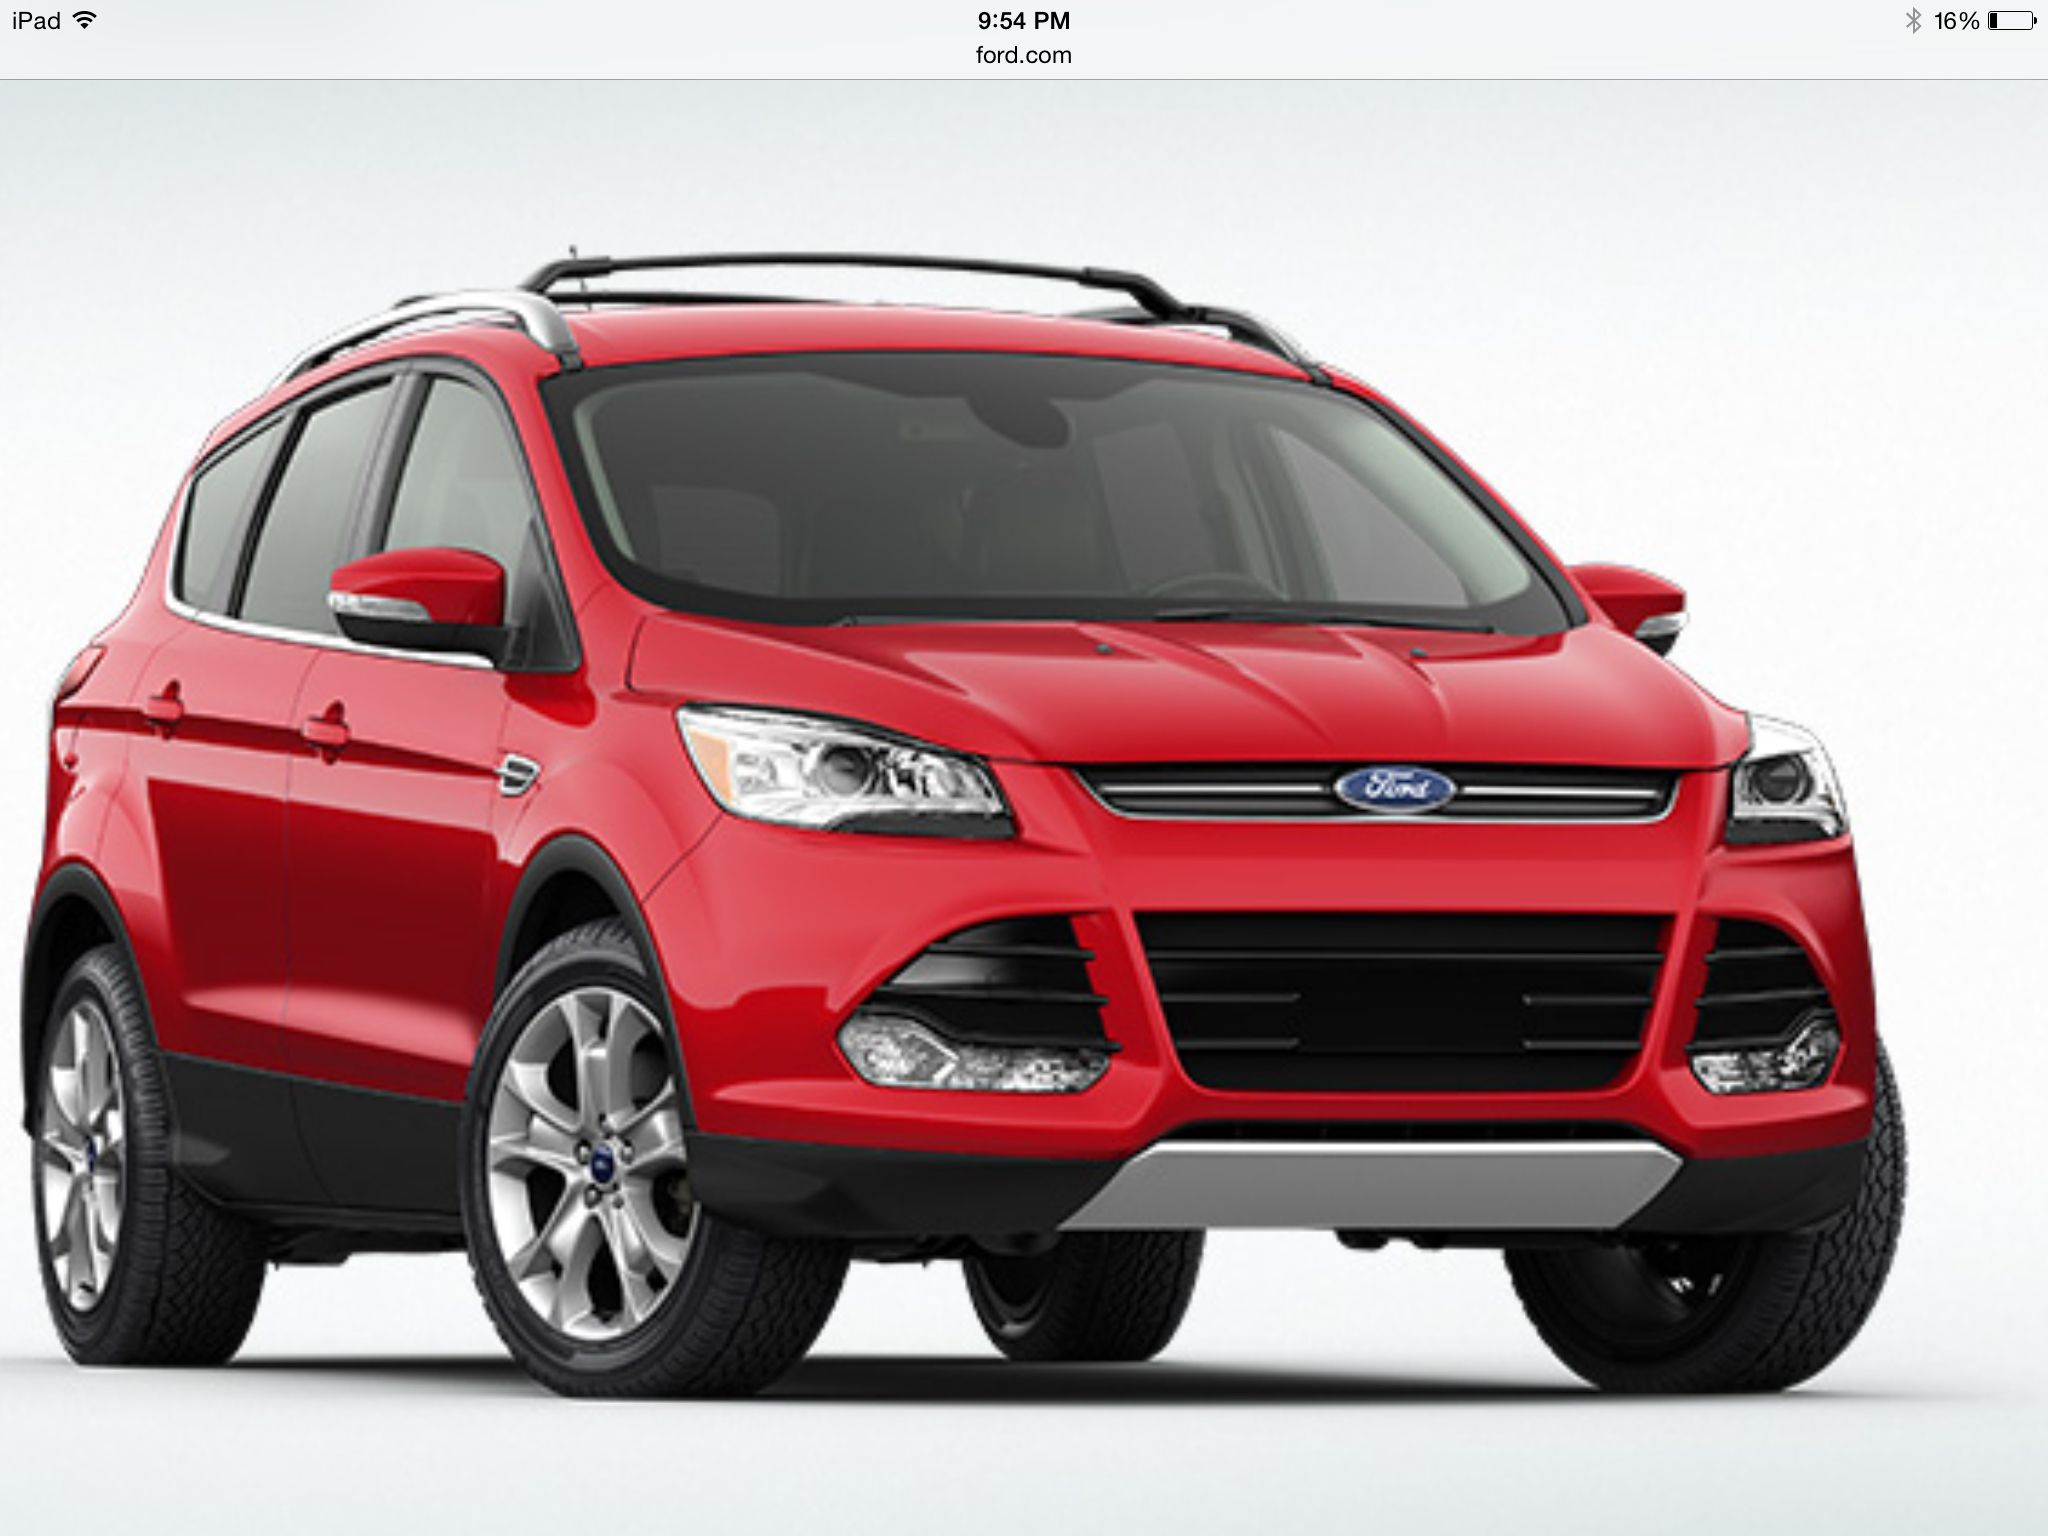 2016 ford escape redesign and changes http fordcarsi com 2016 ford escape redesign and changes automotive pinterest 2016 ford escape ford and